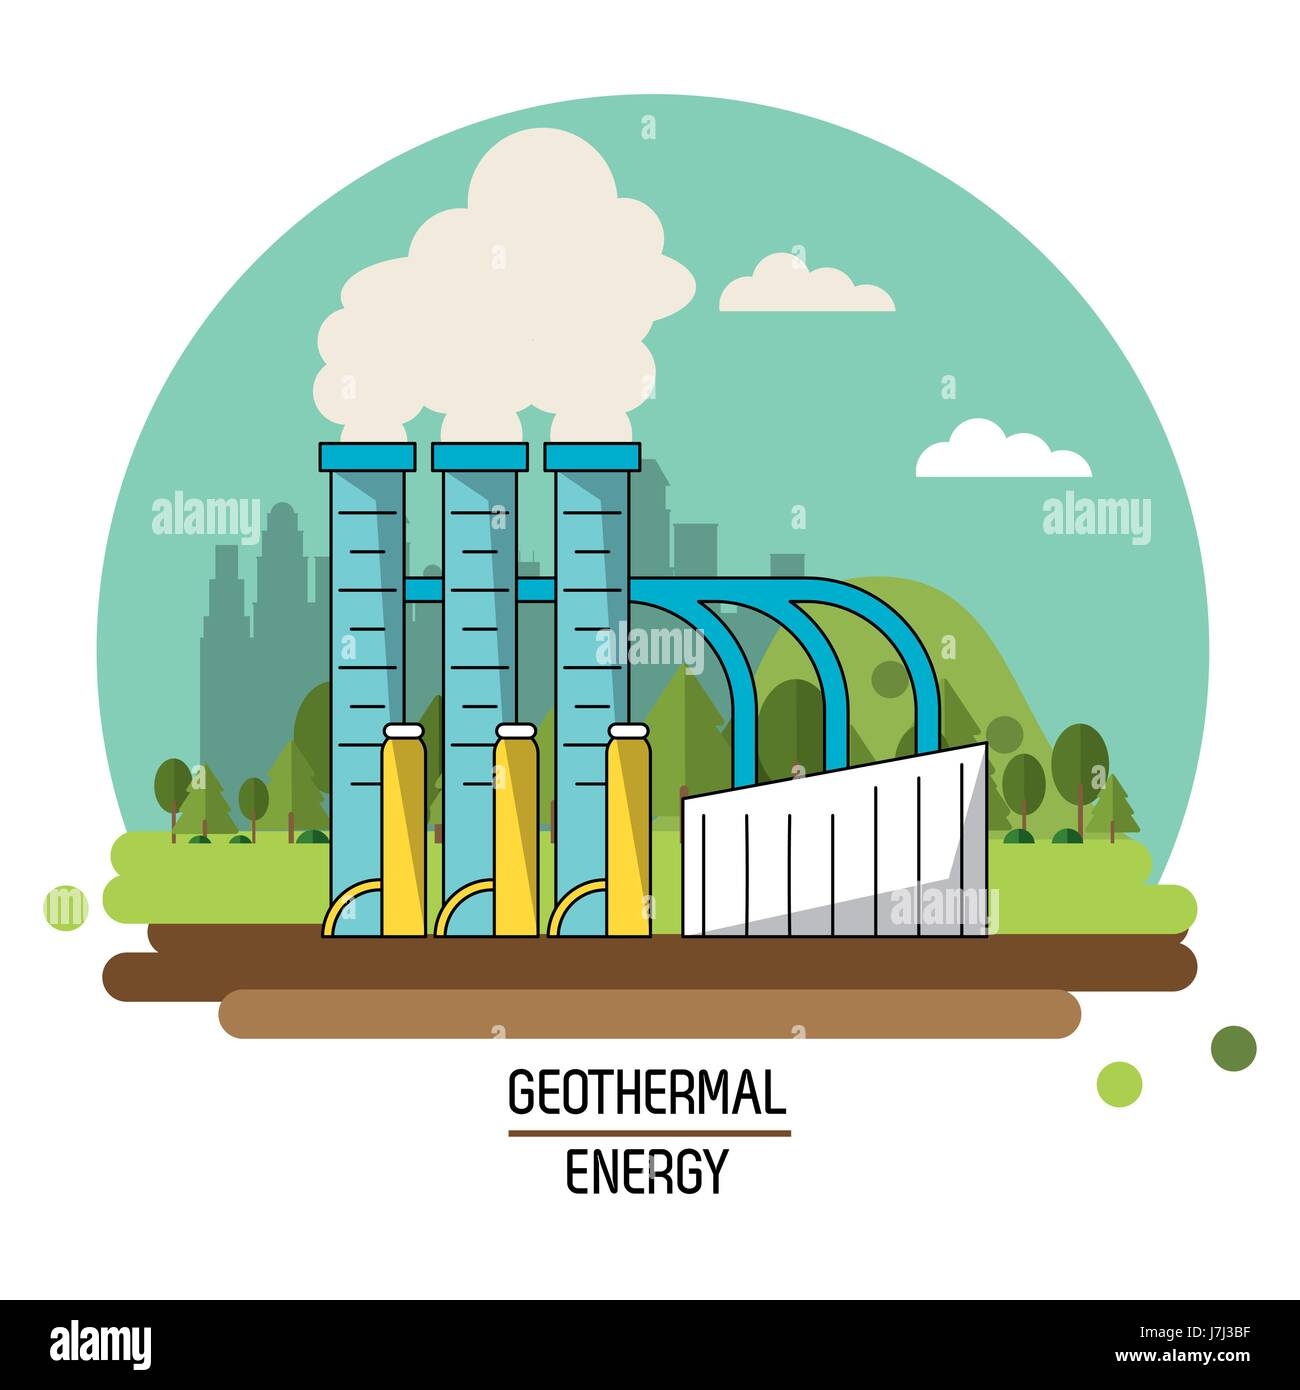 hight resolution of color landscape image geothermal energy production plant stock vector